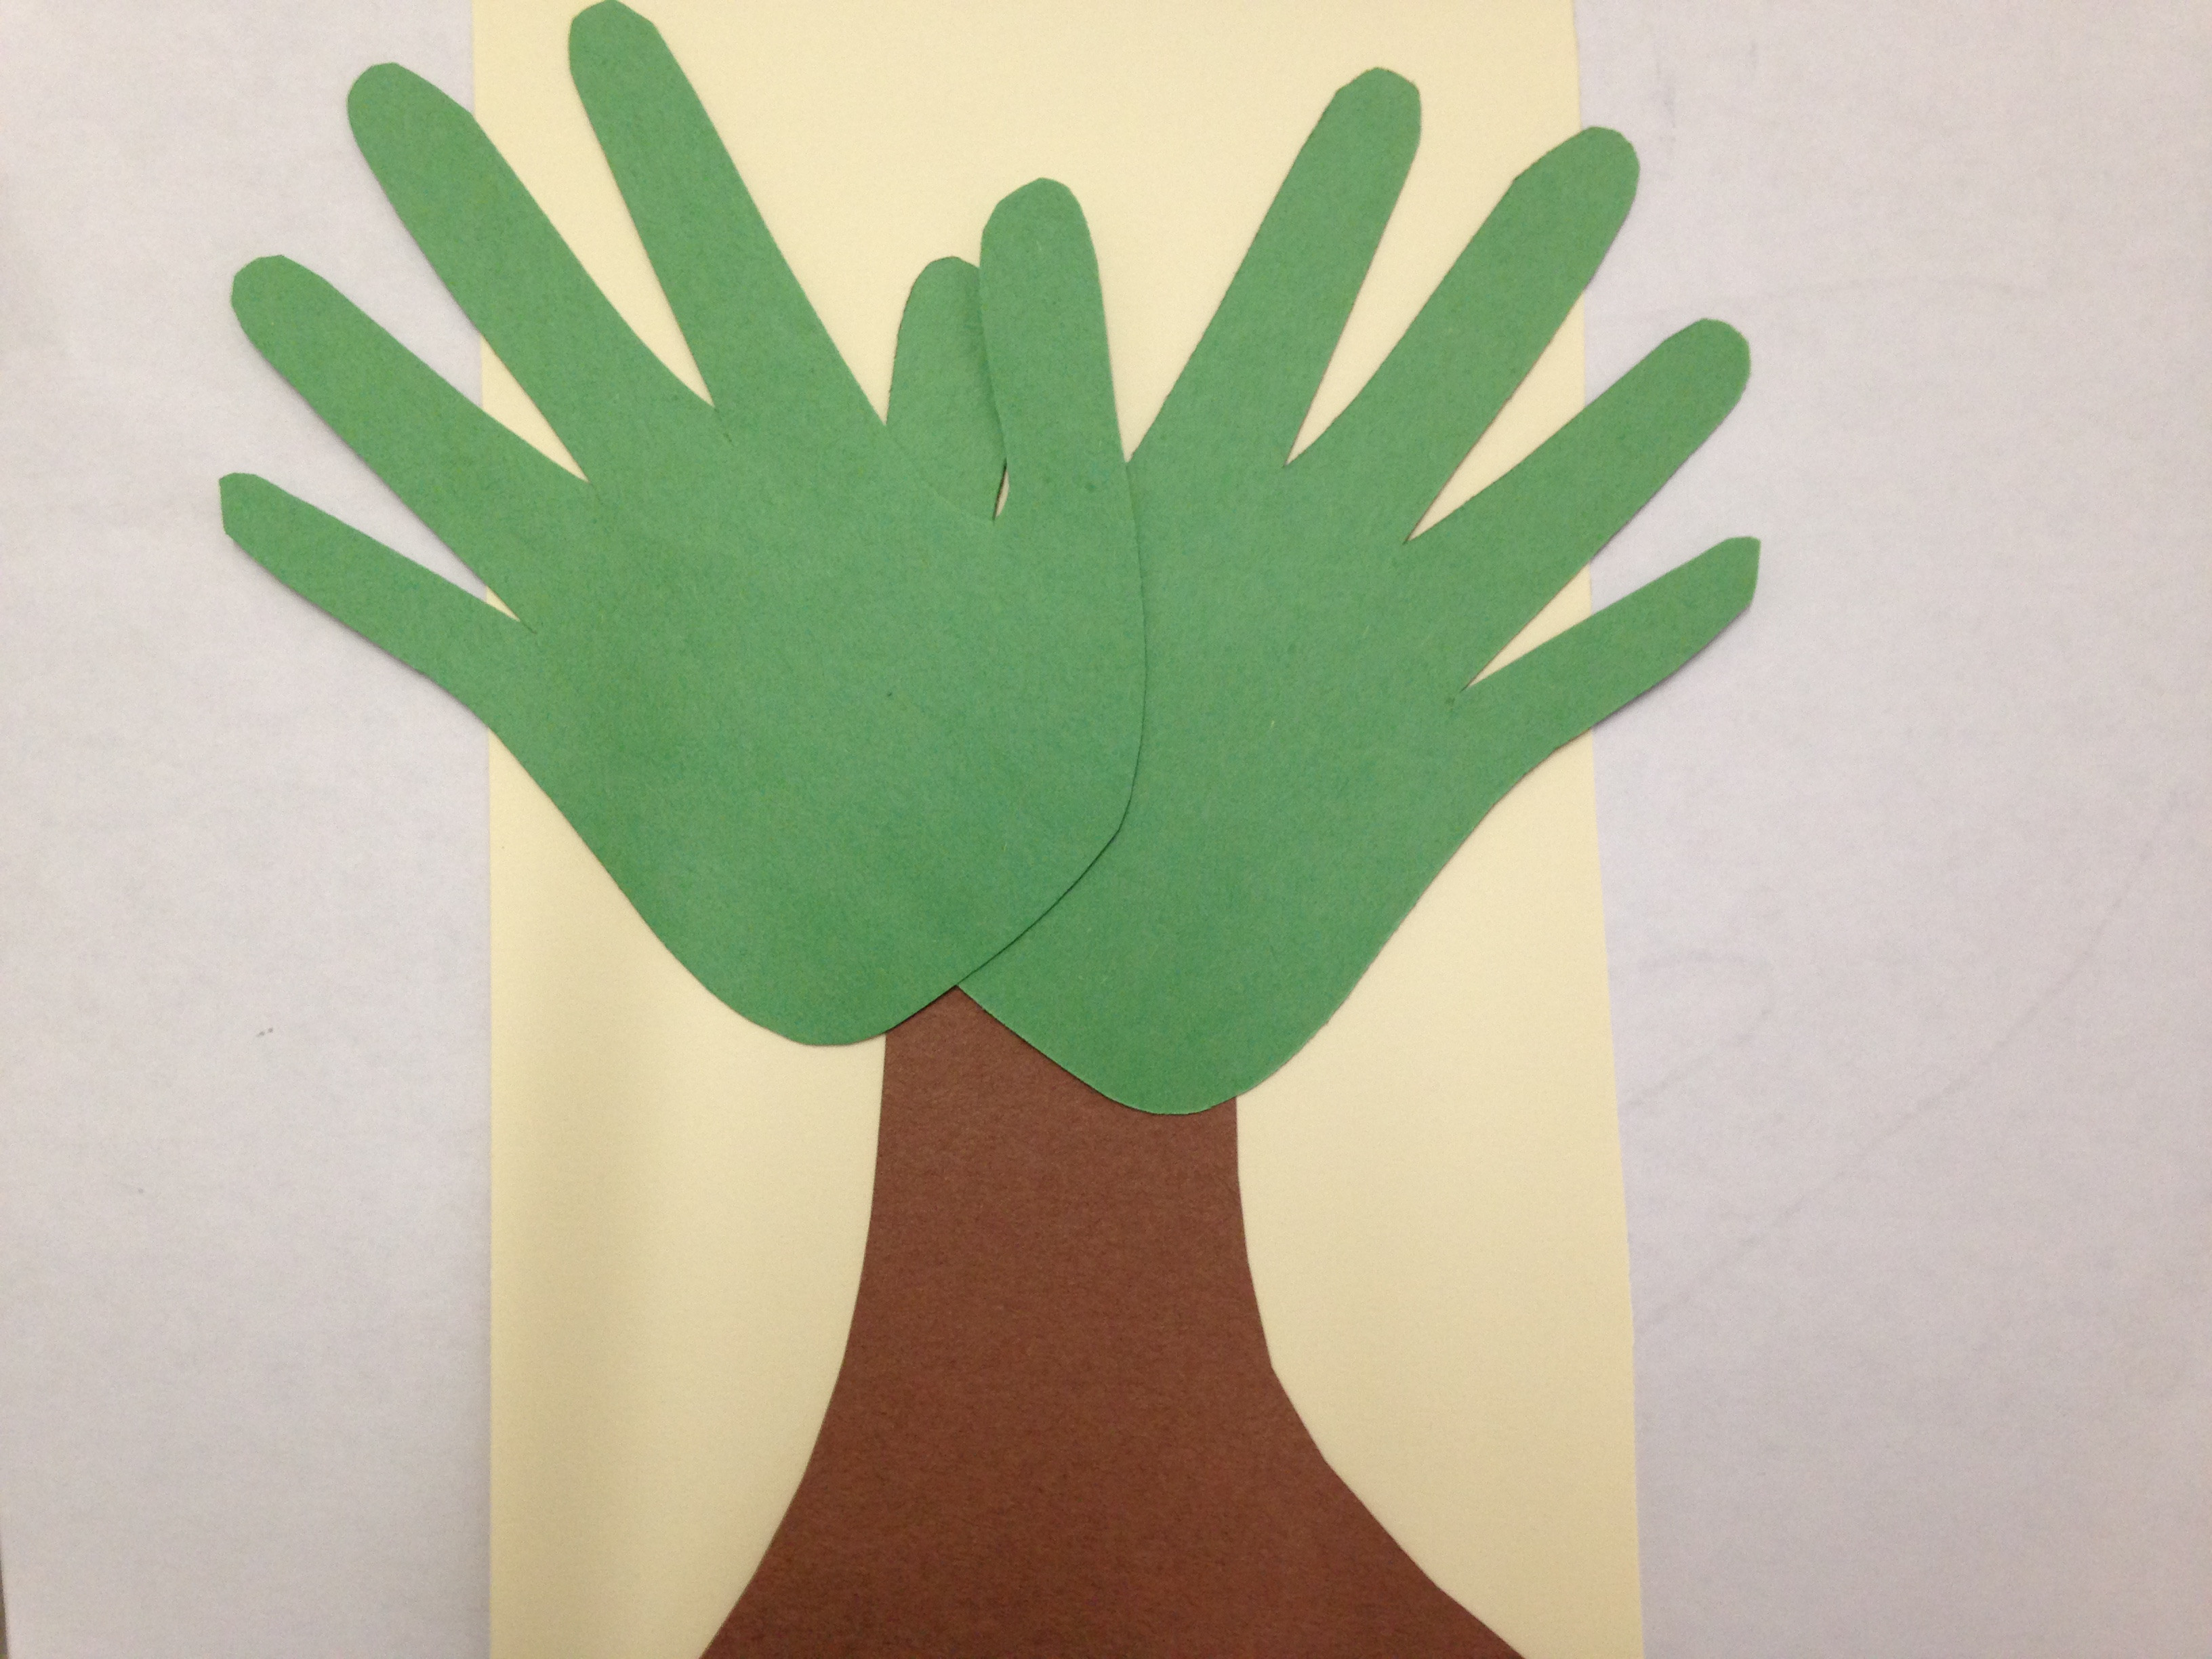 Construction paper hands glued to tree trunk cut out to make a tree